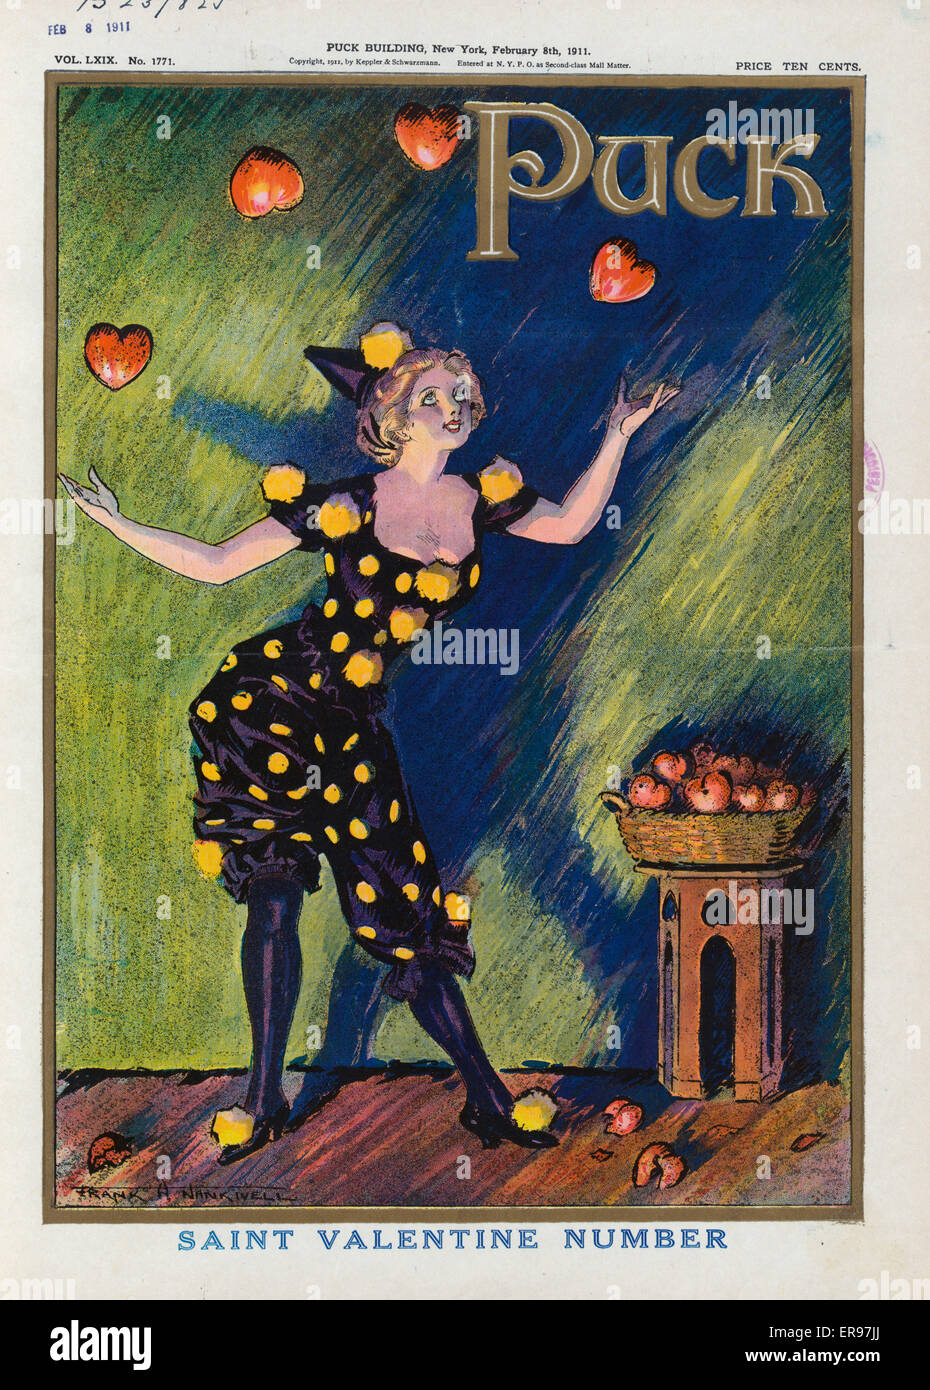 Saint Valentine Number. Illustration Shows A Young Woman Juggling Hearts In  Celebration Of Valentines Day. Date 1911 February 8